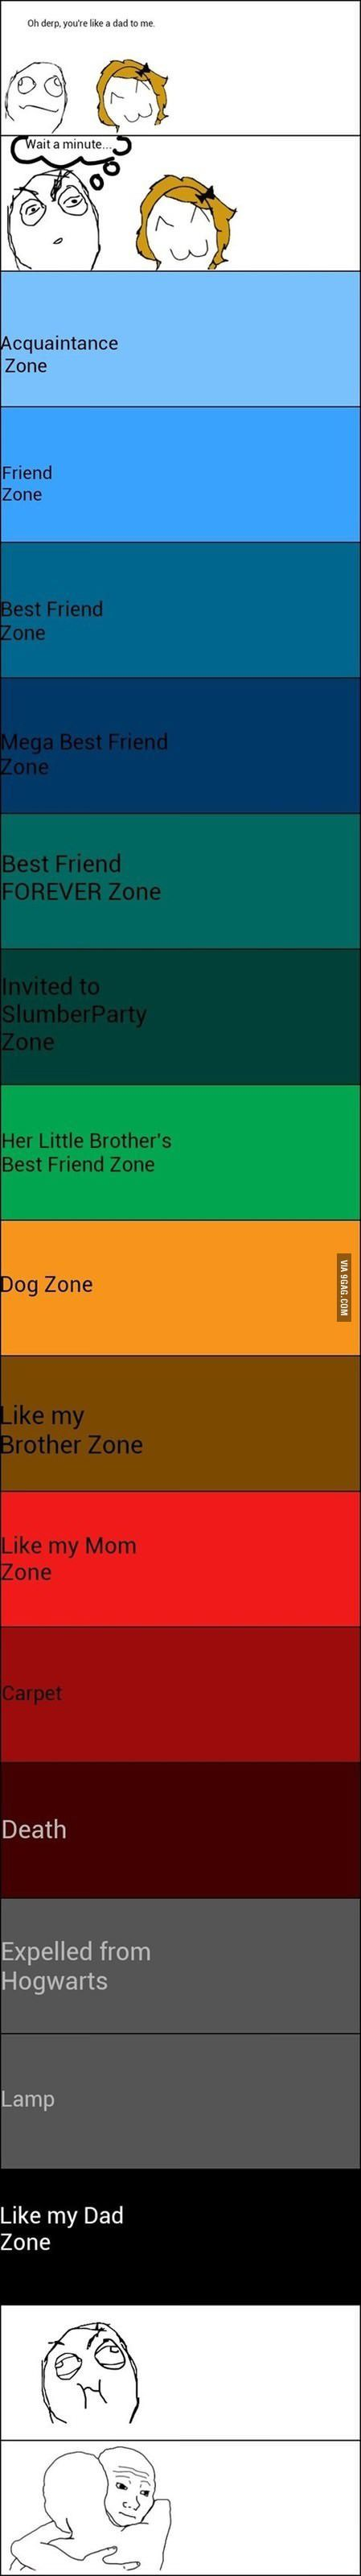 Signs your in the friend zone